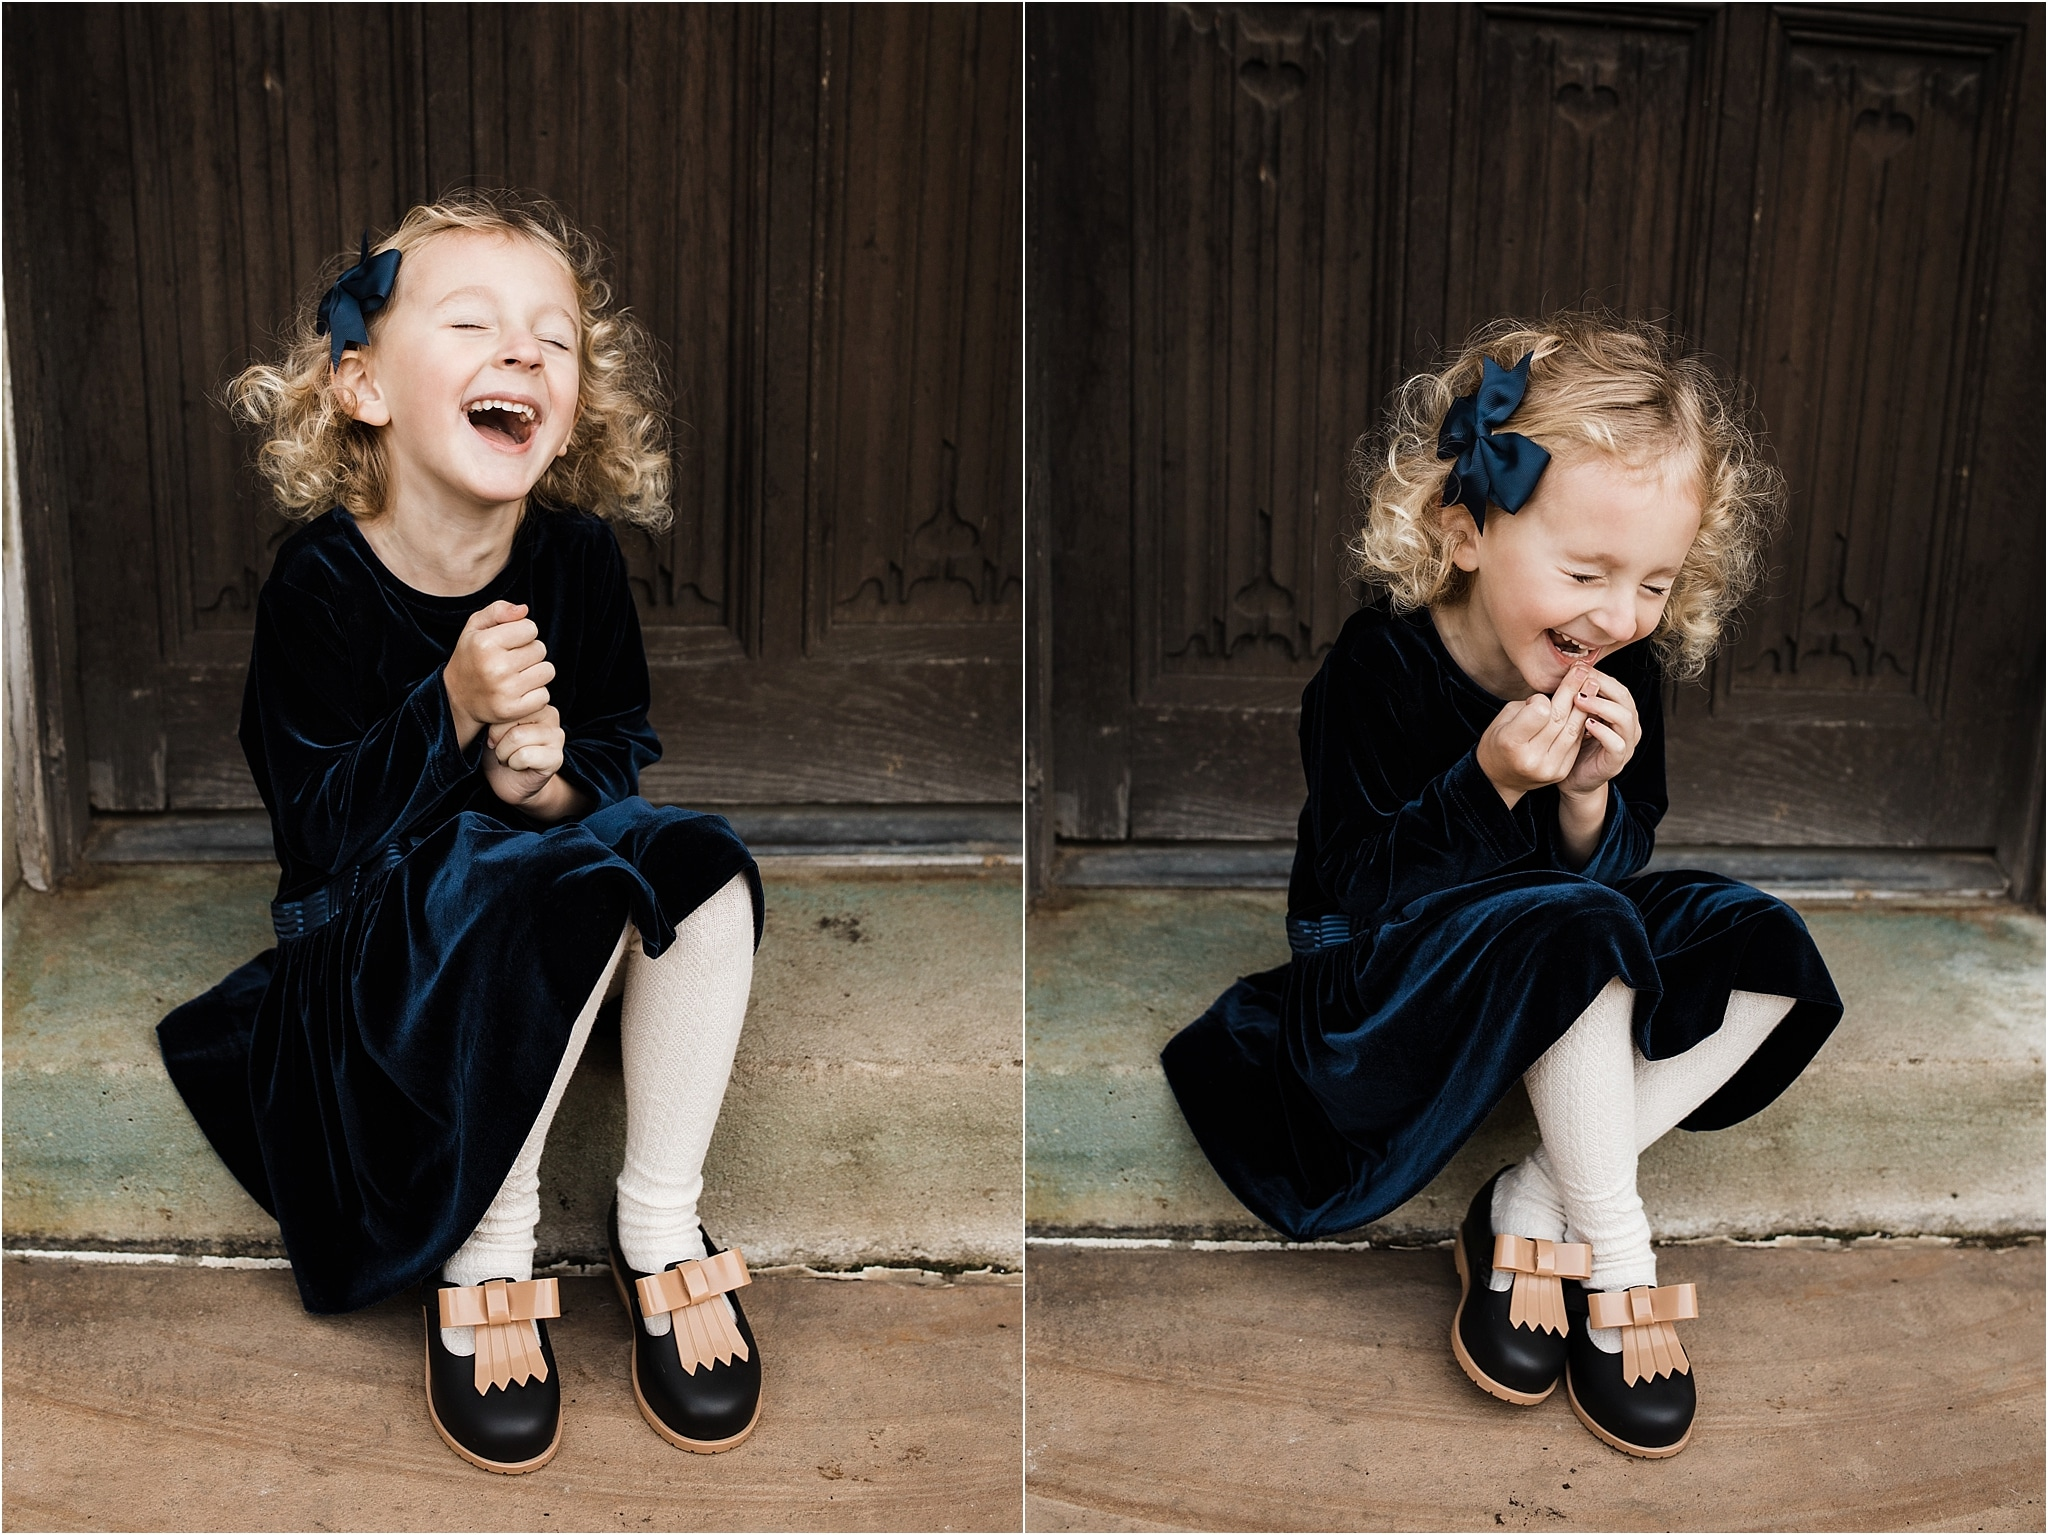 Natural, laid back and fun family photos at Hartwood Acres in Pittsburgh